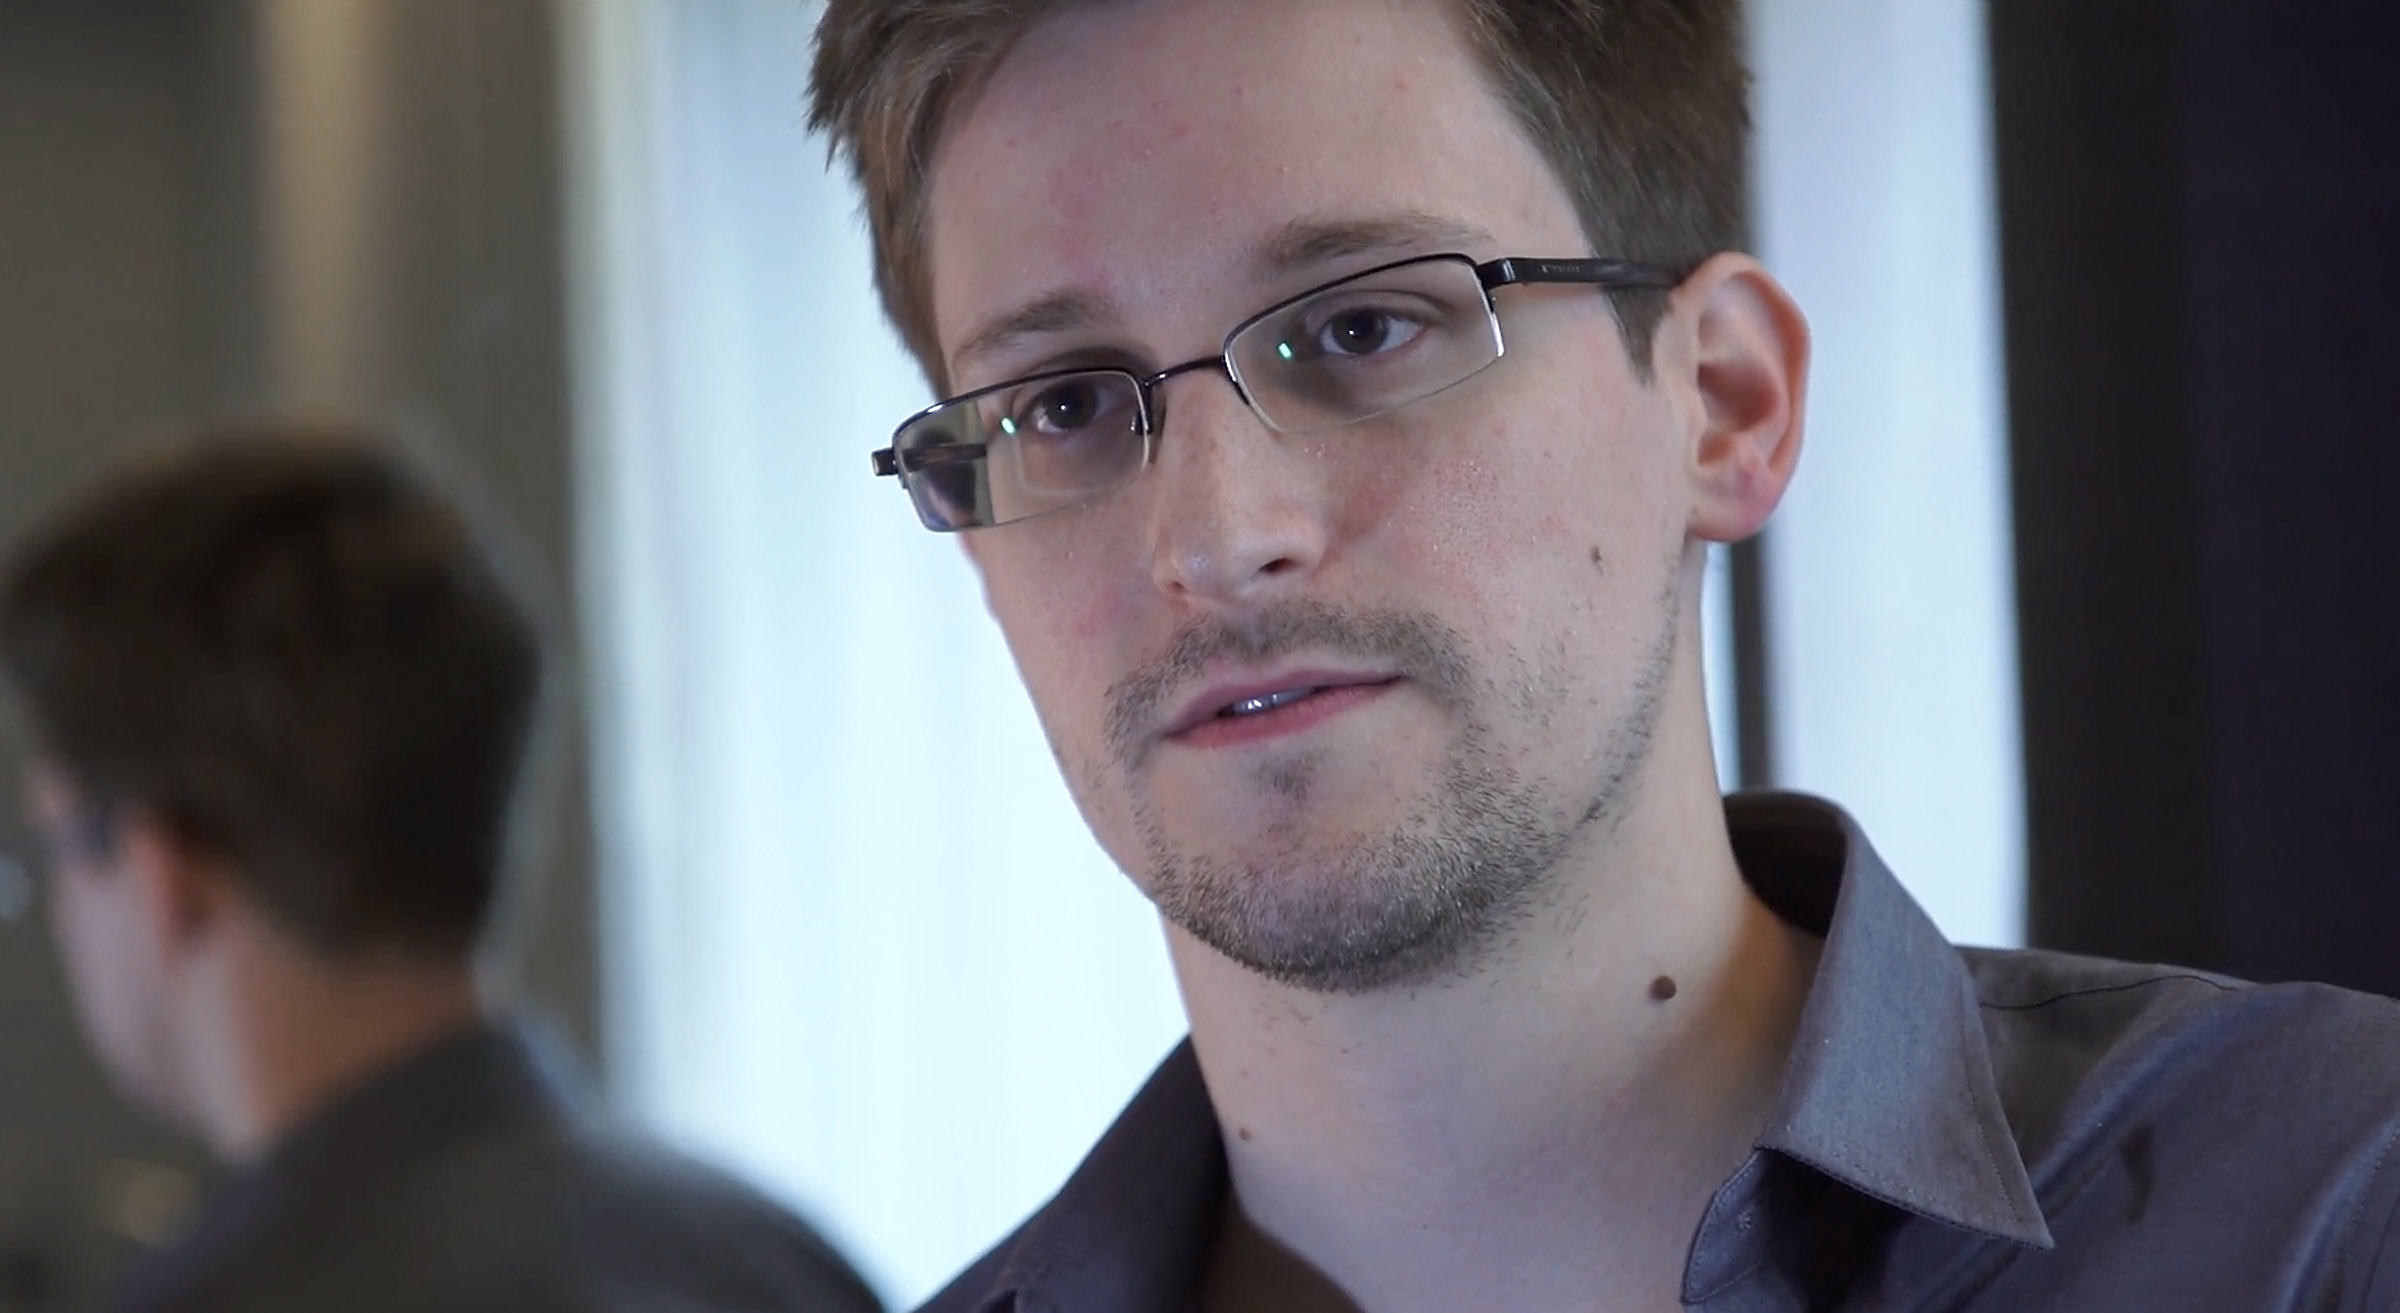 170248179 2 Intelligence Capabilities Exposed By Edward Snowden Shut Down, Was He A Hero After All?